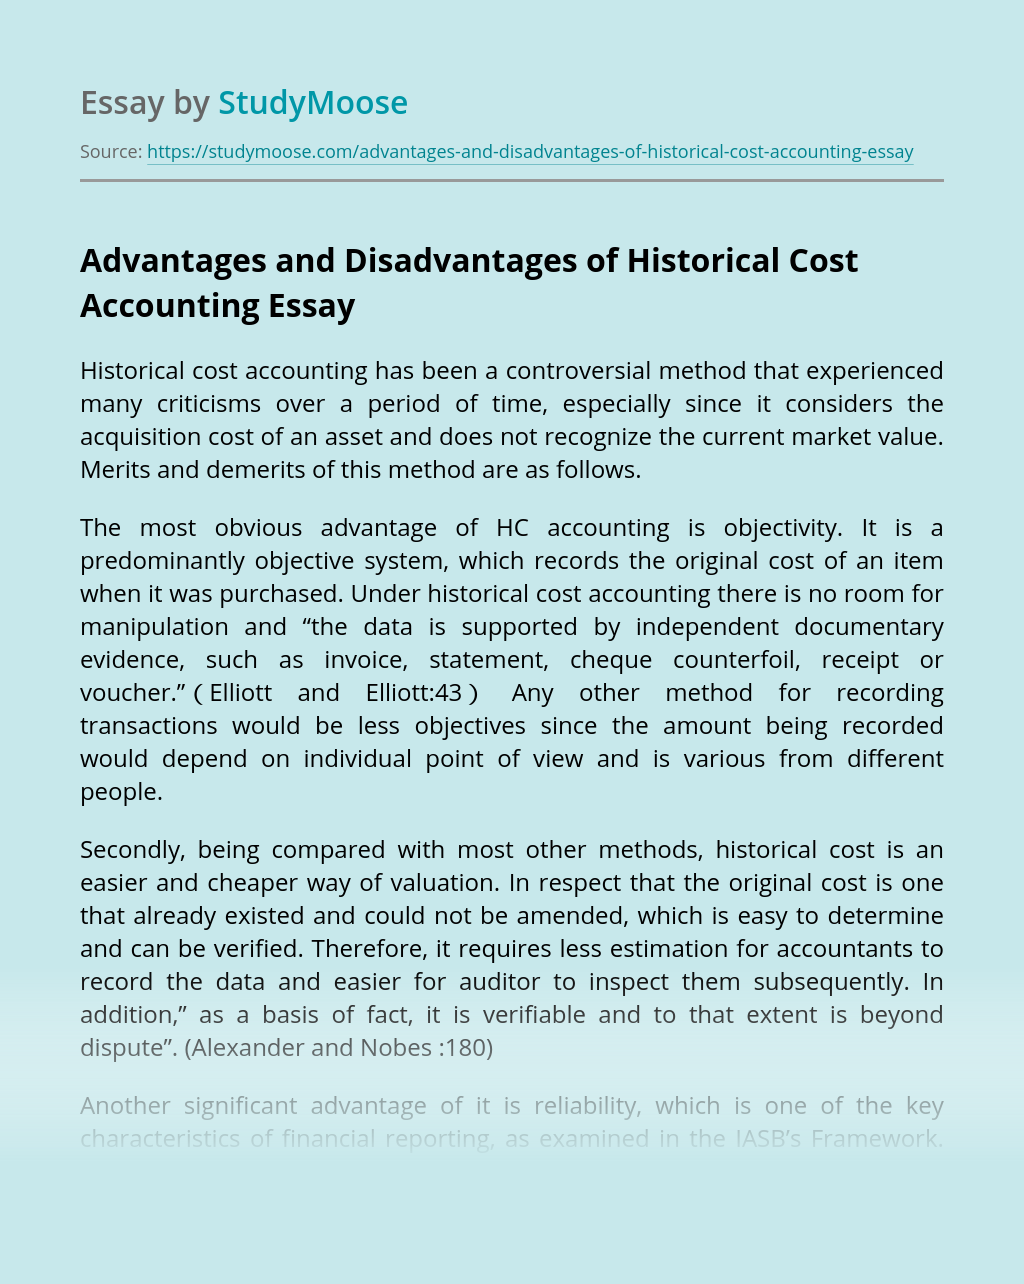 Advantages and Disadvantages of Historical Cost Accounting